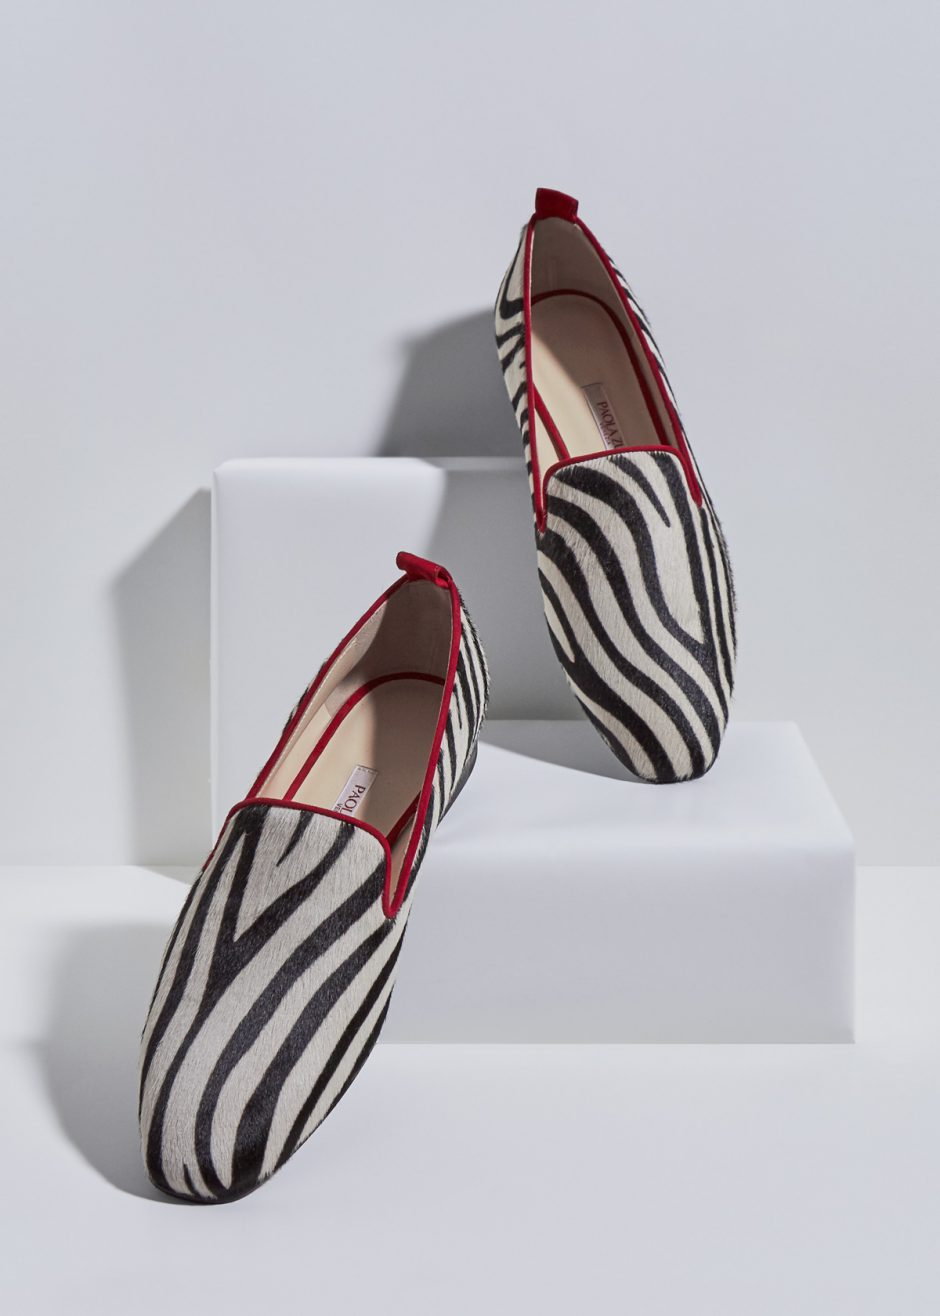 Vicky – Ballet flat striped pony skin suede with red profile